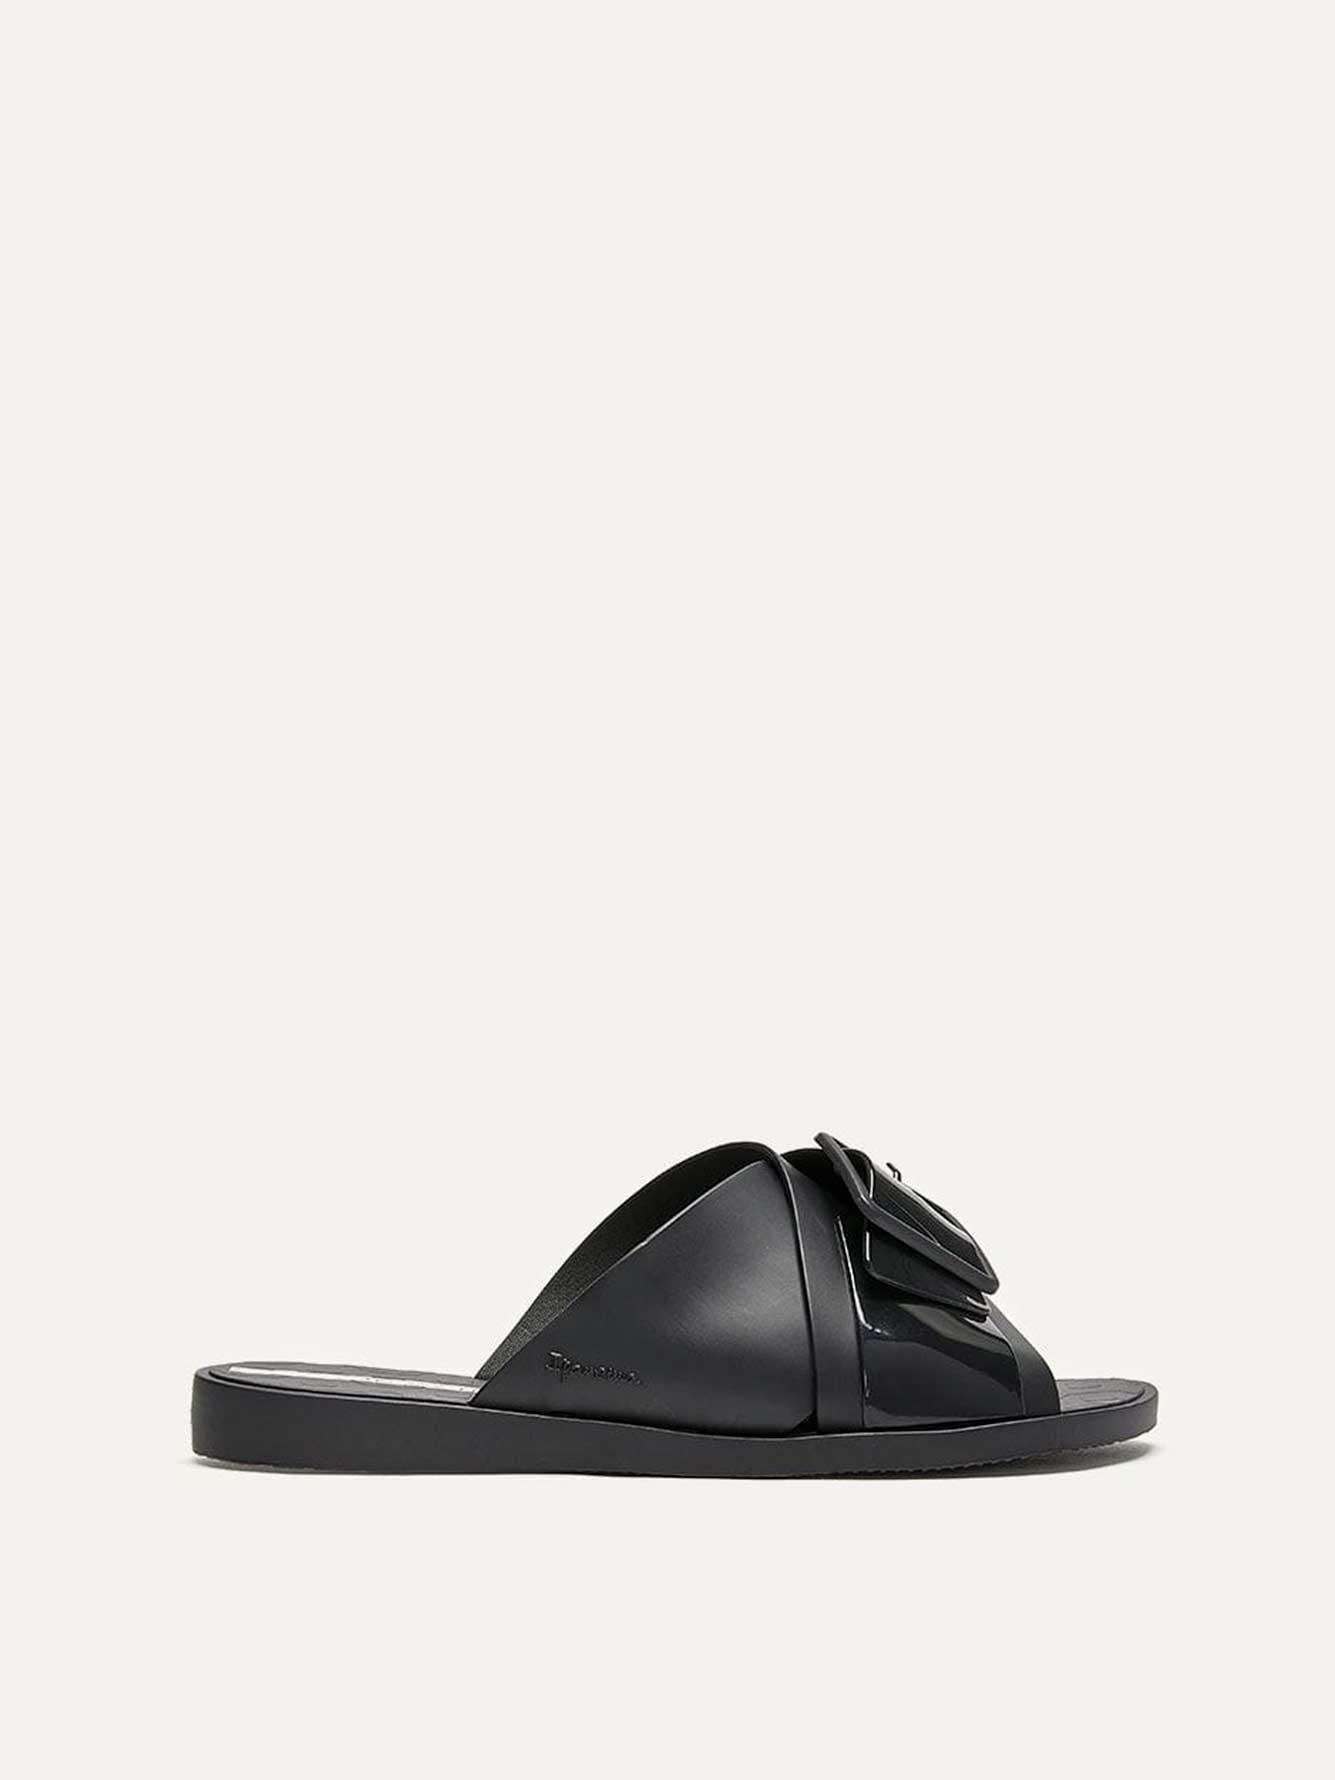 Wide Slide In Sandals with Buckle - Ipanema